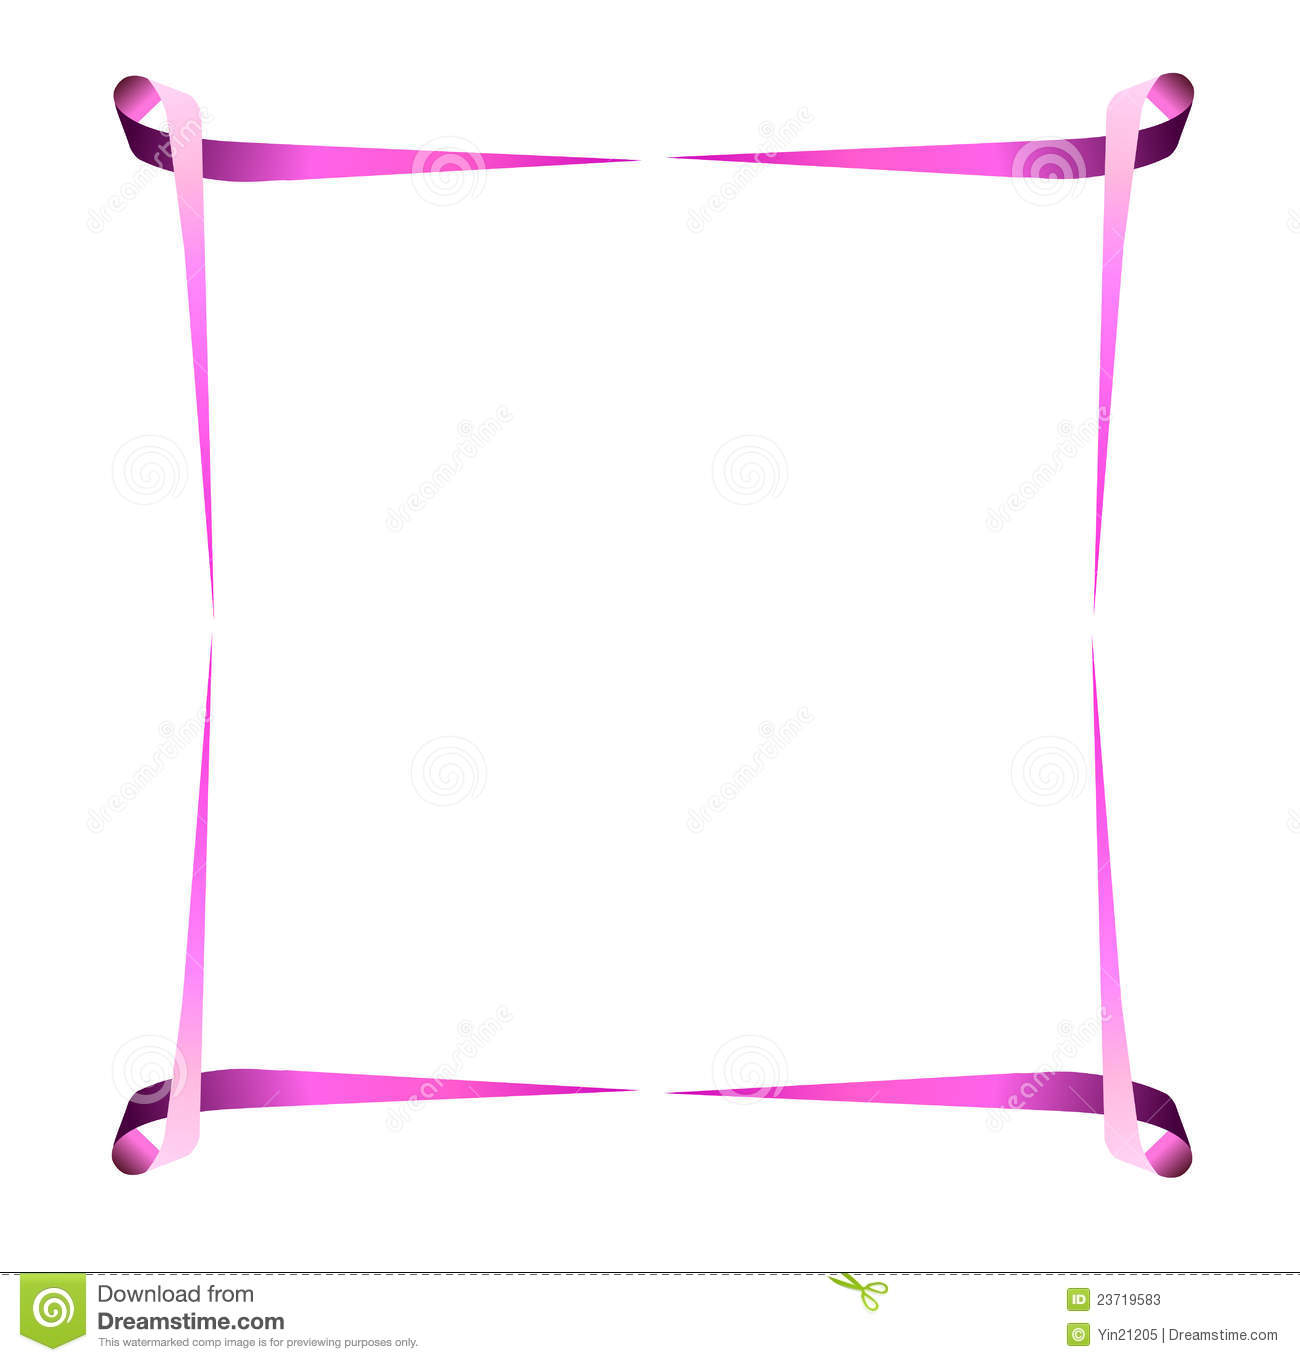 Illustrated breast cancer border with pink ribbons.eps file is ...